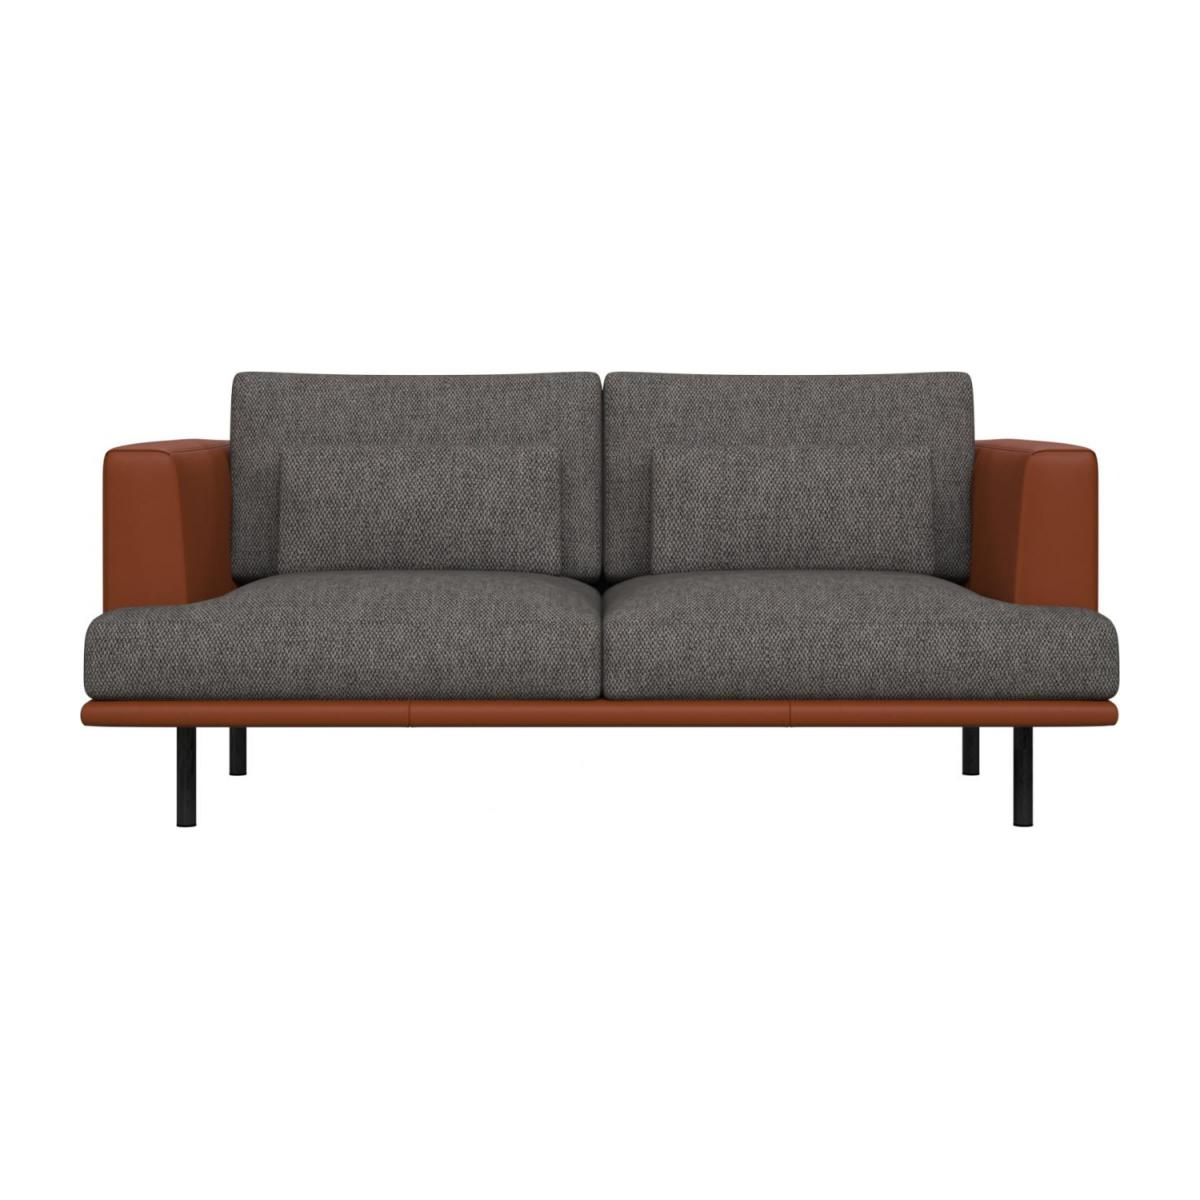 2 seater sofa in Bellagio fabric, night black with base and armrests in brown leather n°2